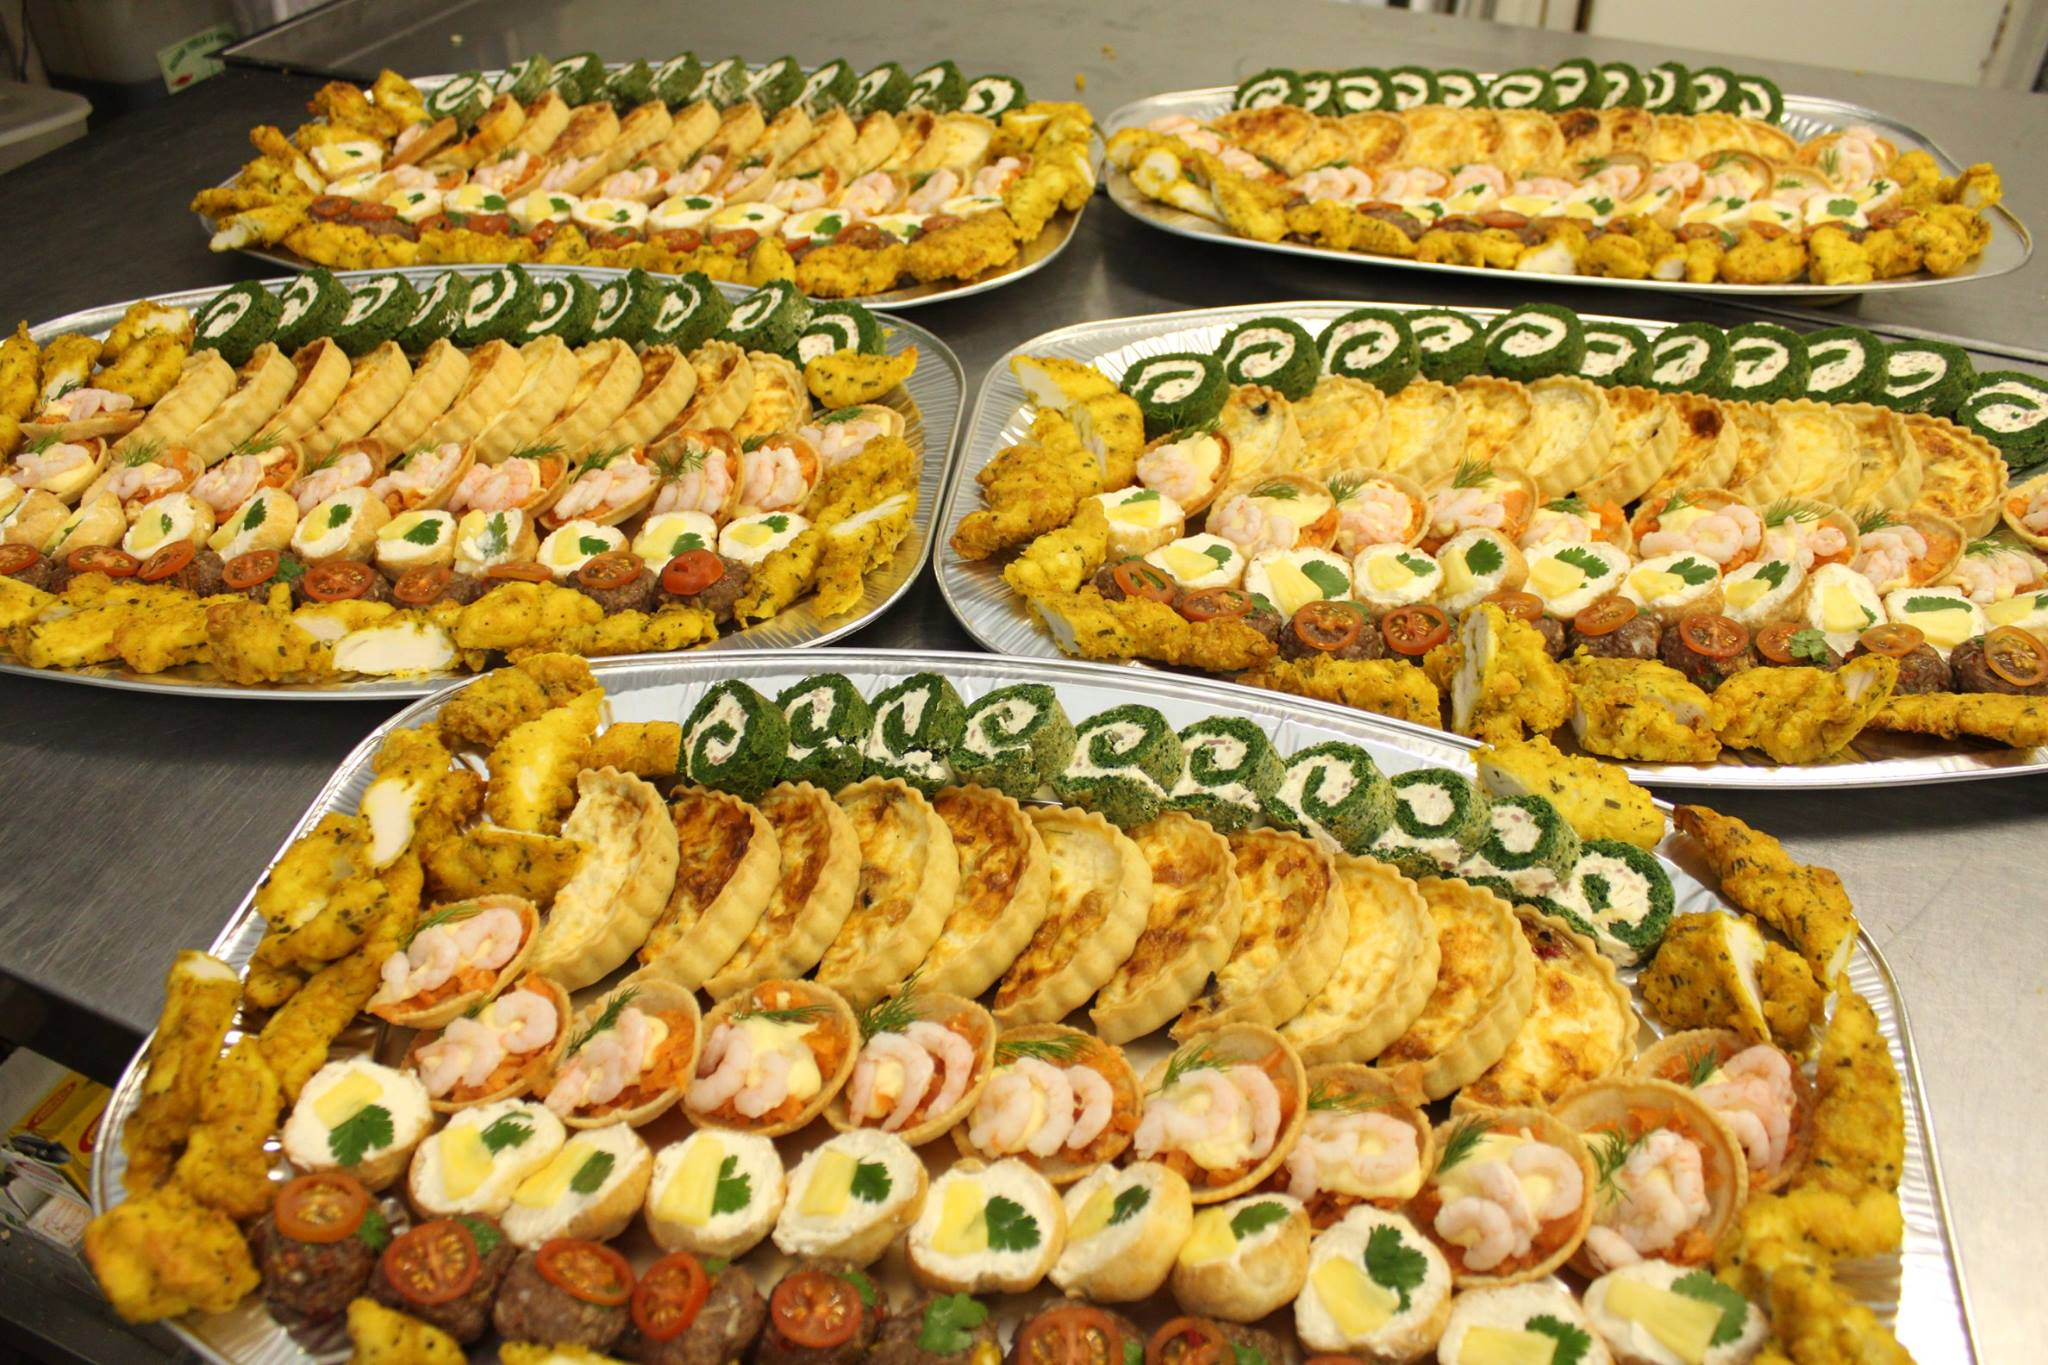 A buffet about to delivered.